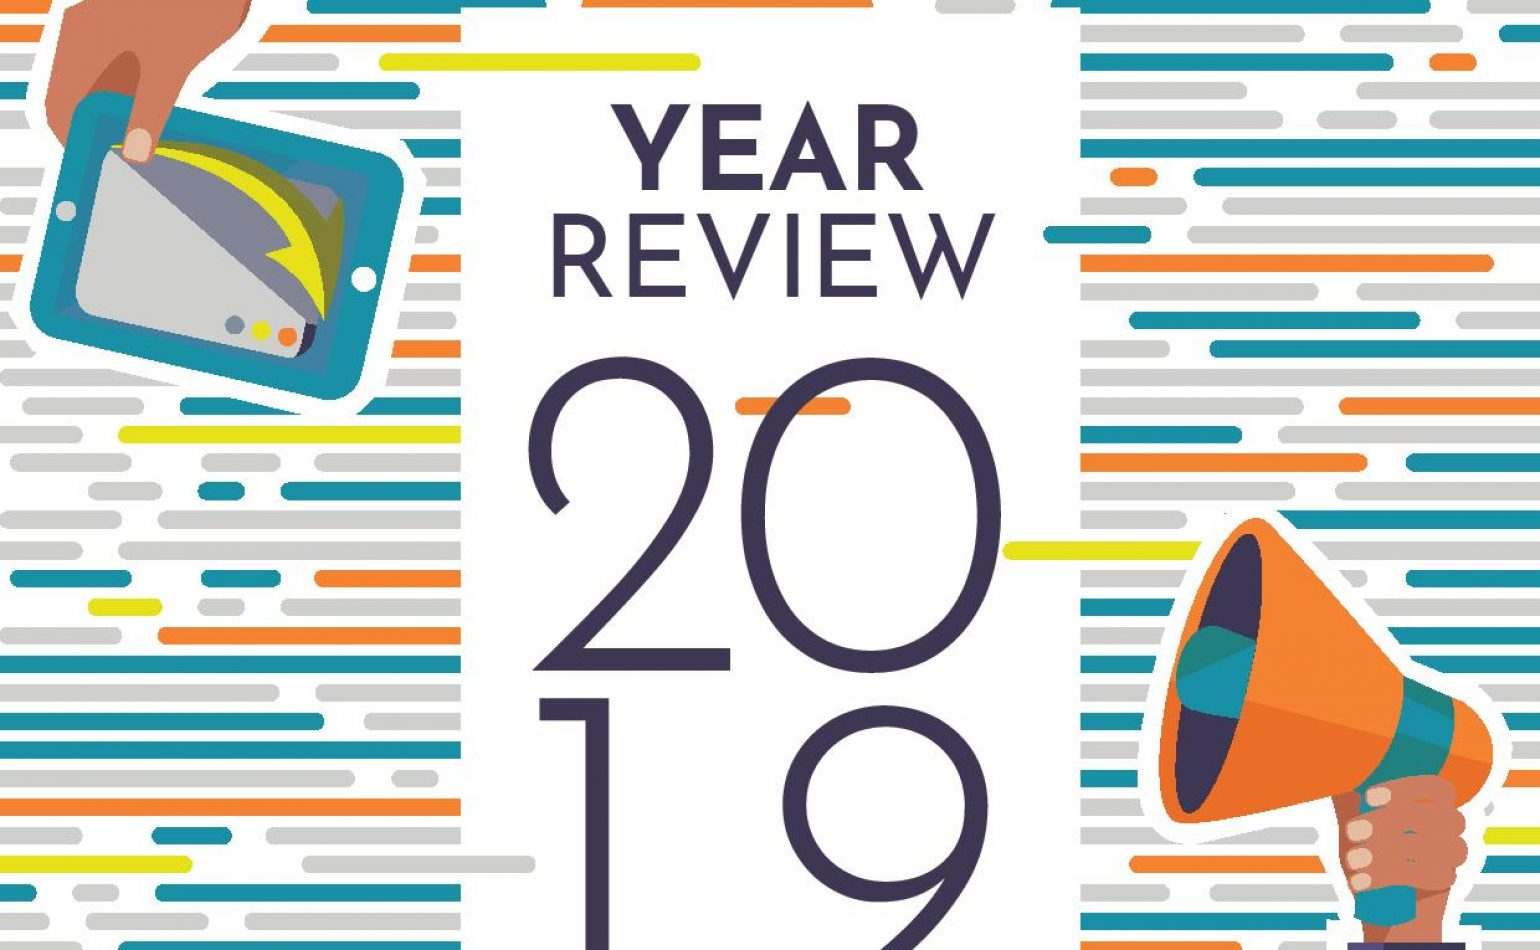 Media Matters for Democracy 2019: A Year in Review